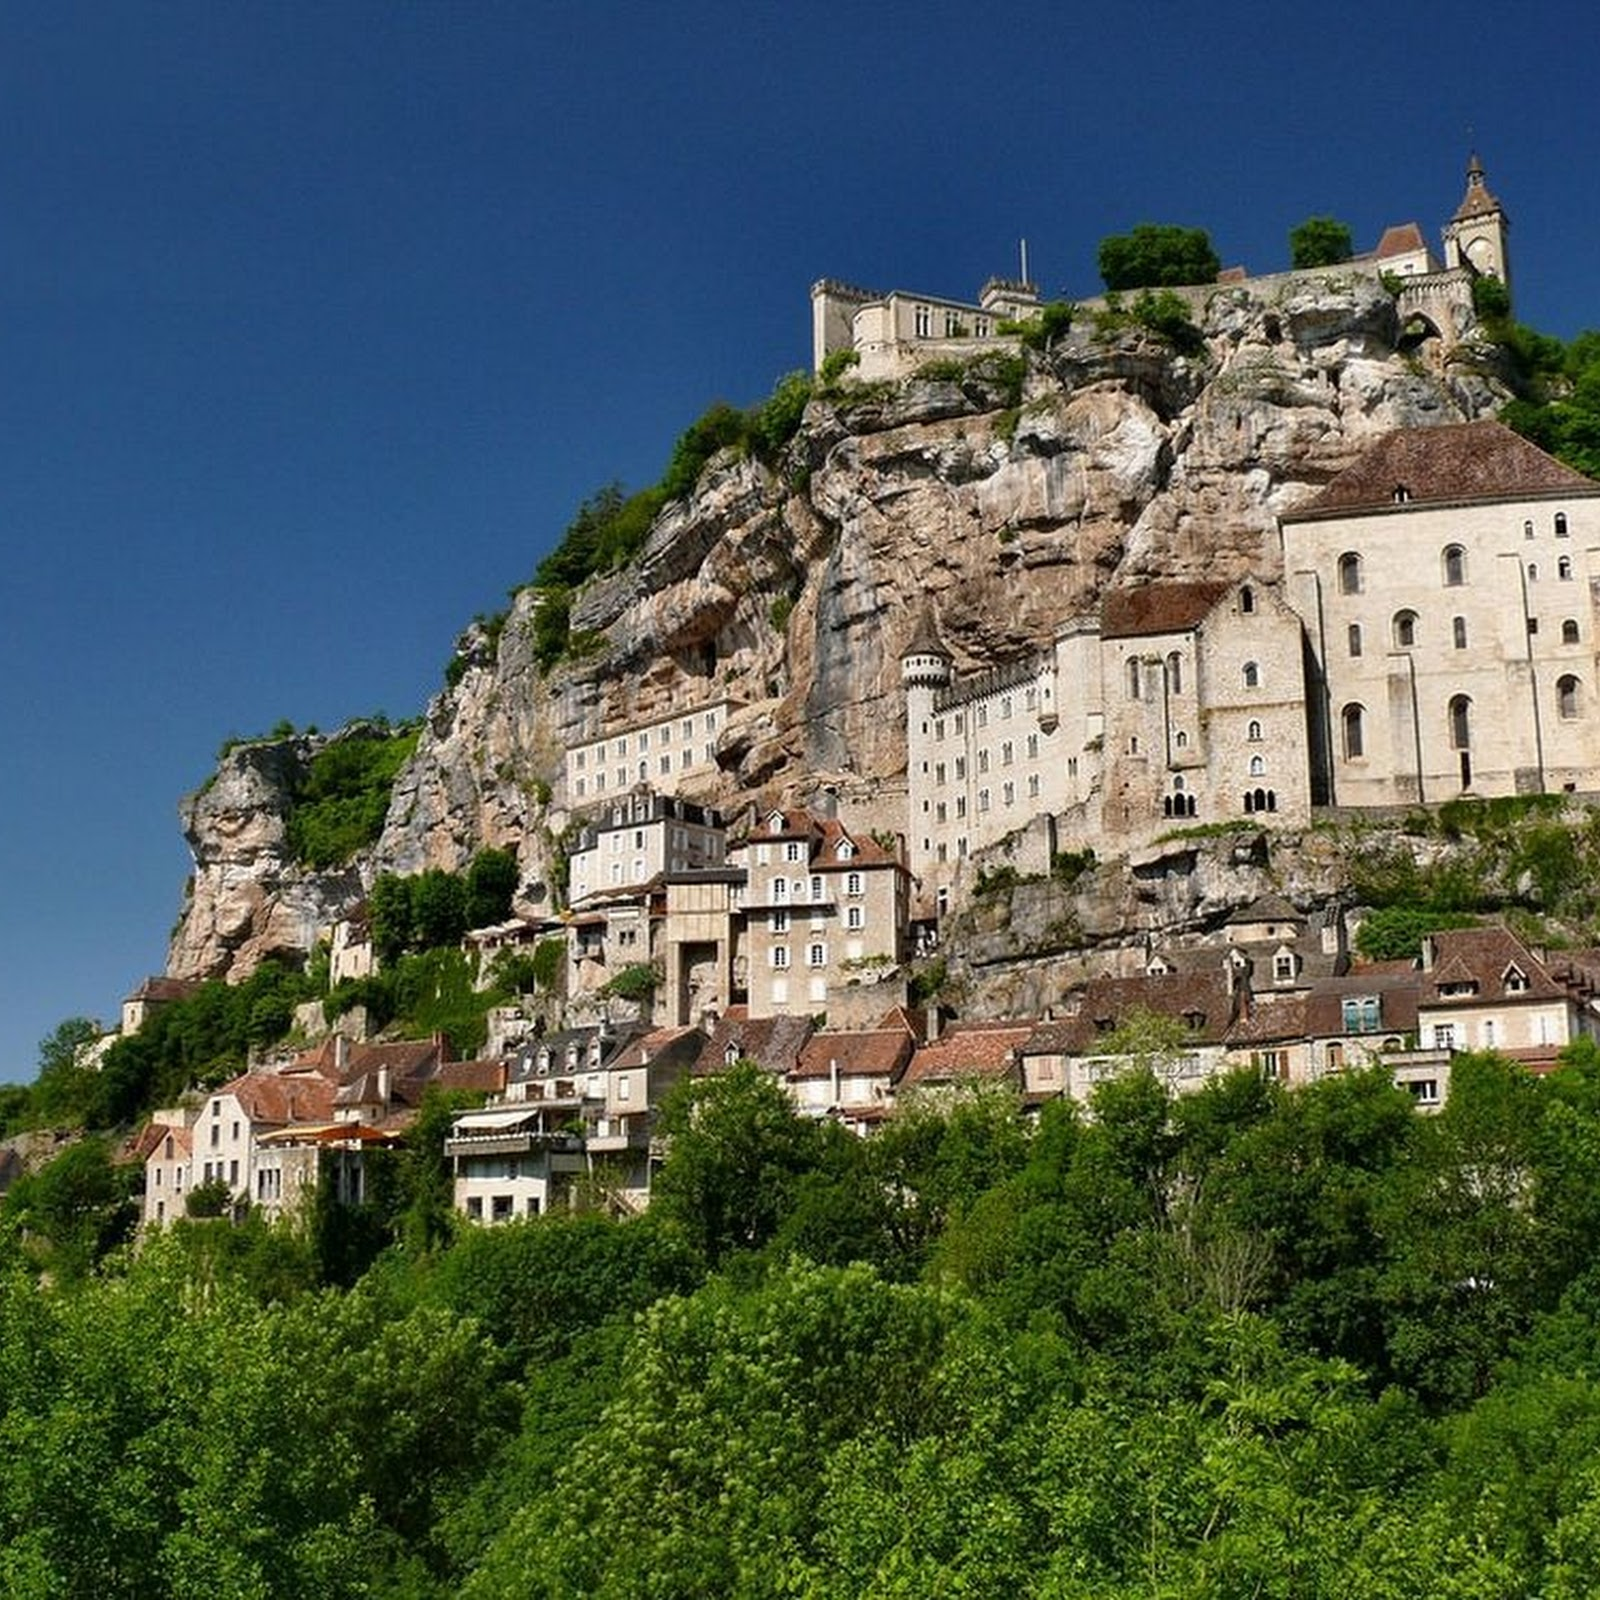 Rocamadour—The Vertical Village